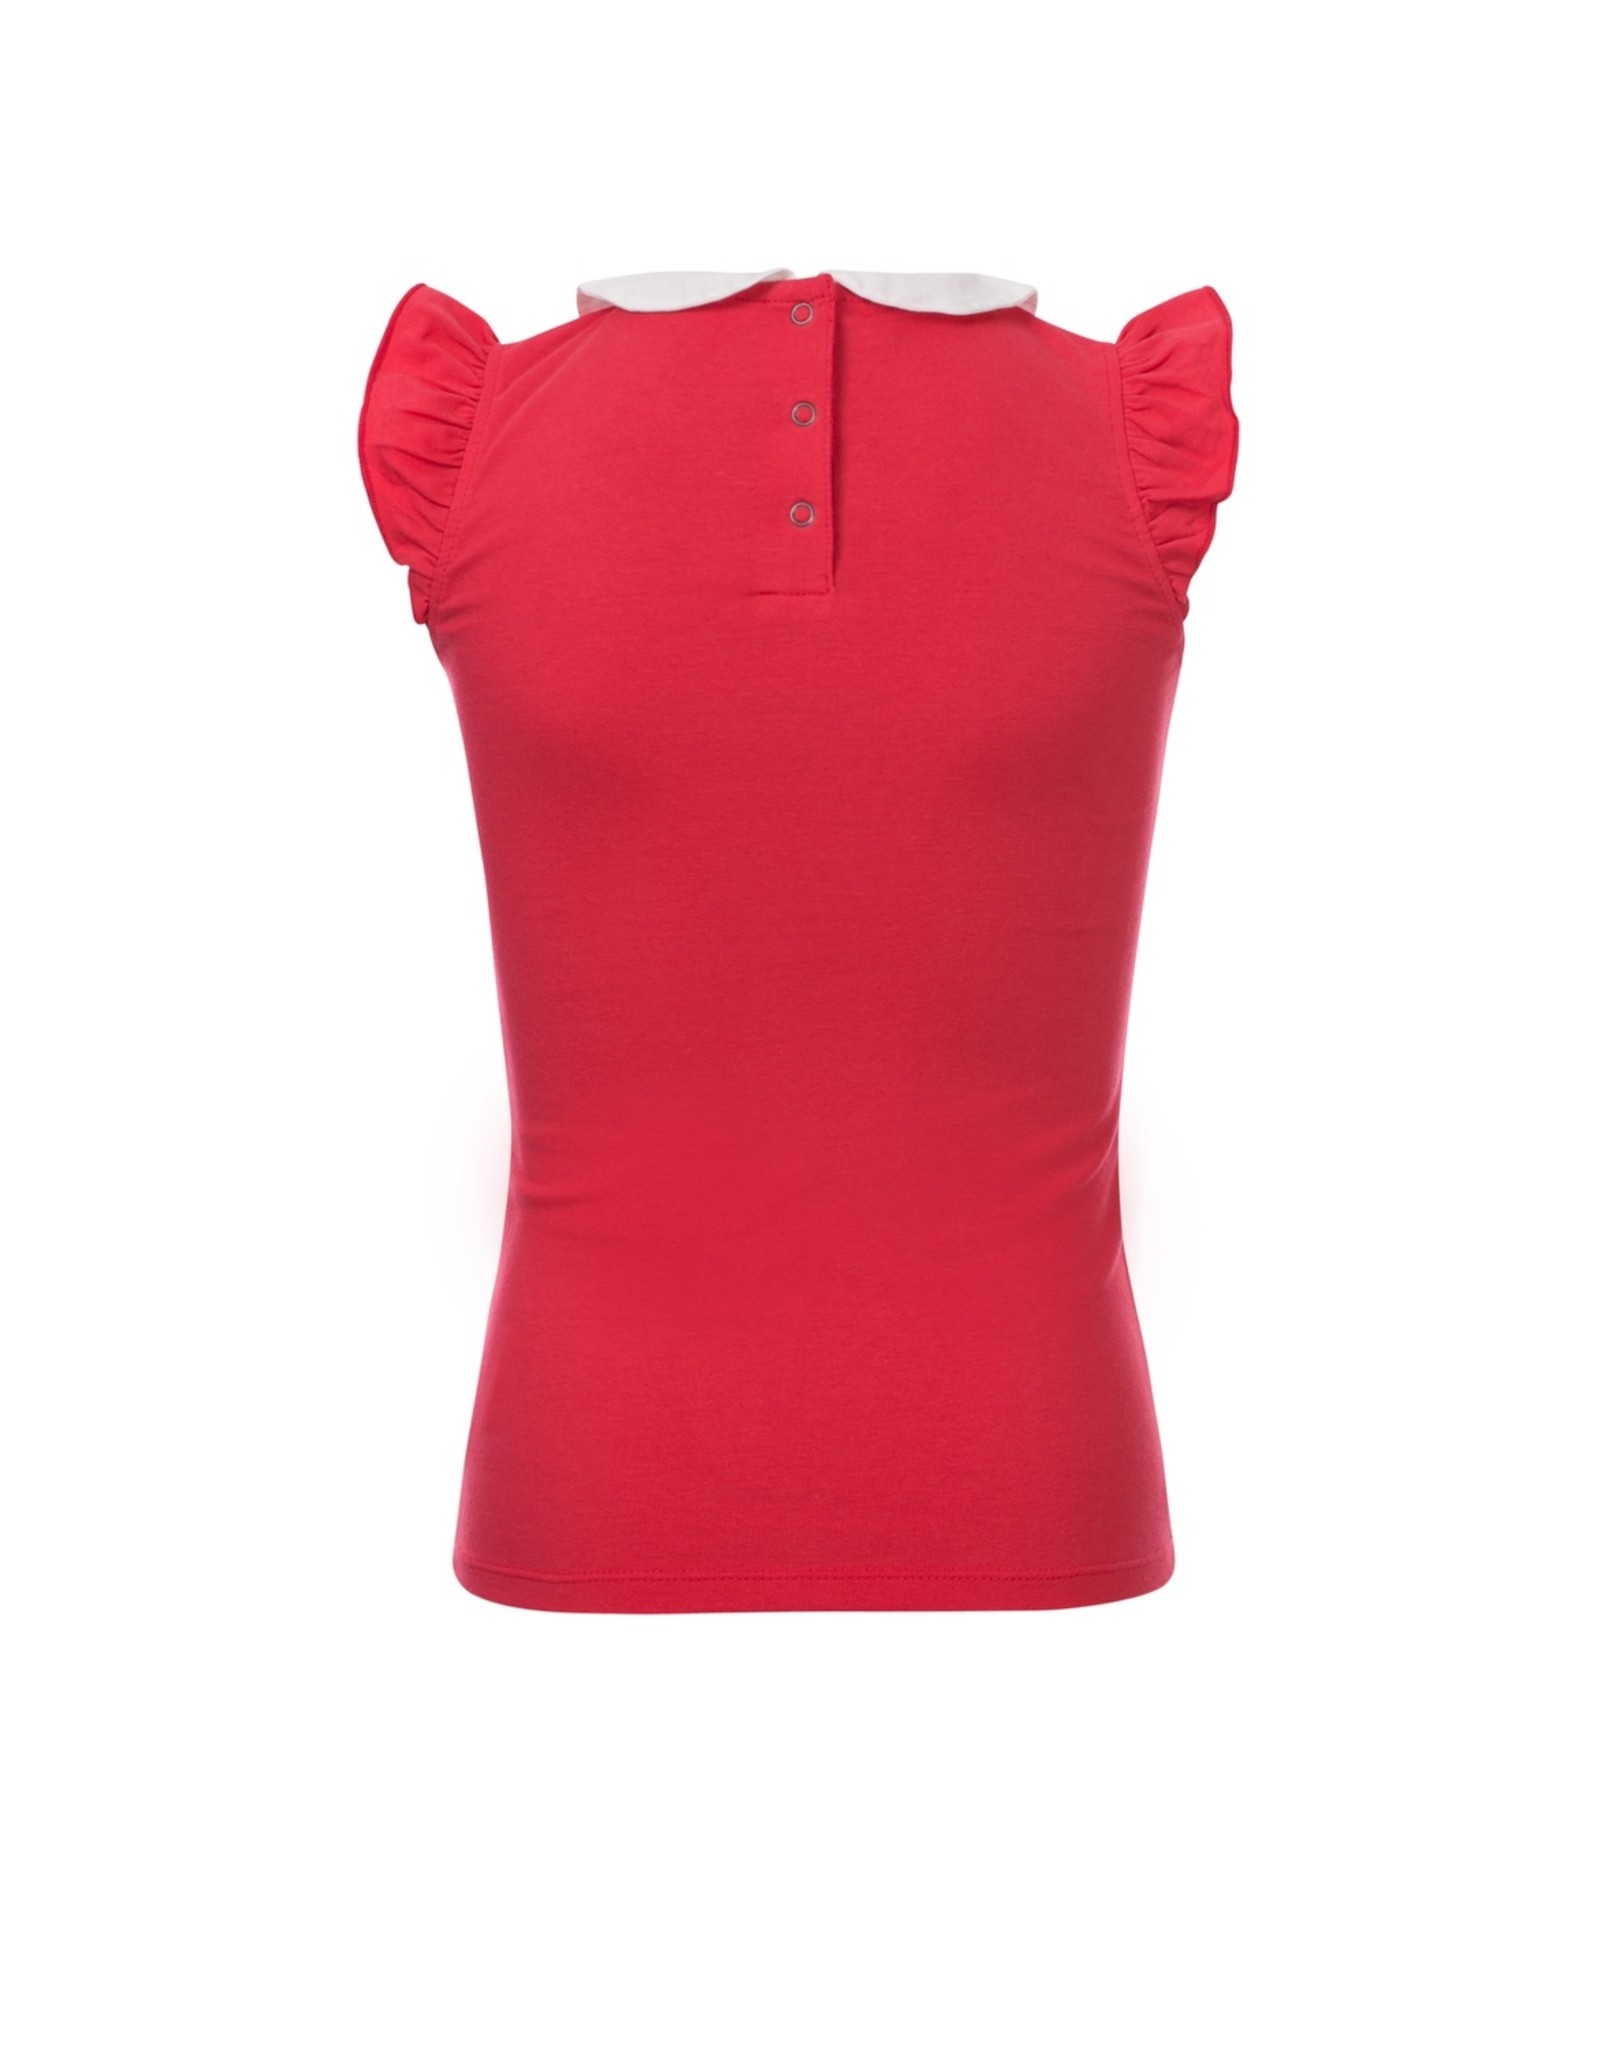 Looxs Revolution Little top with collar